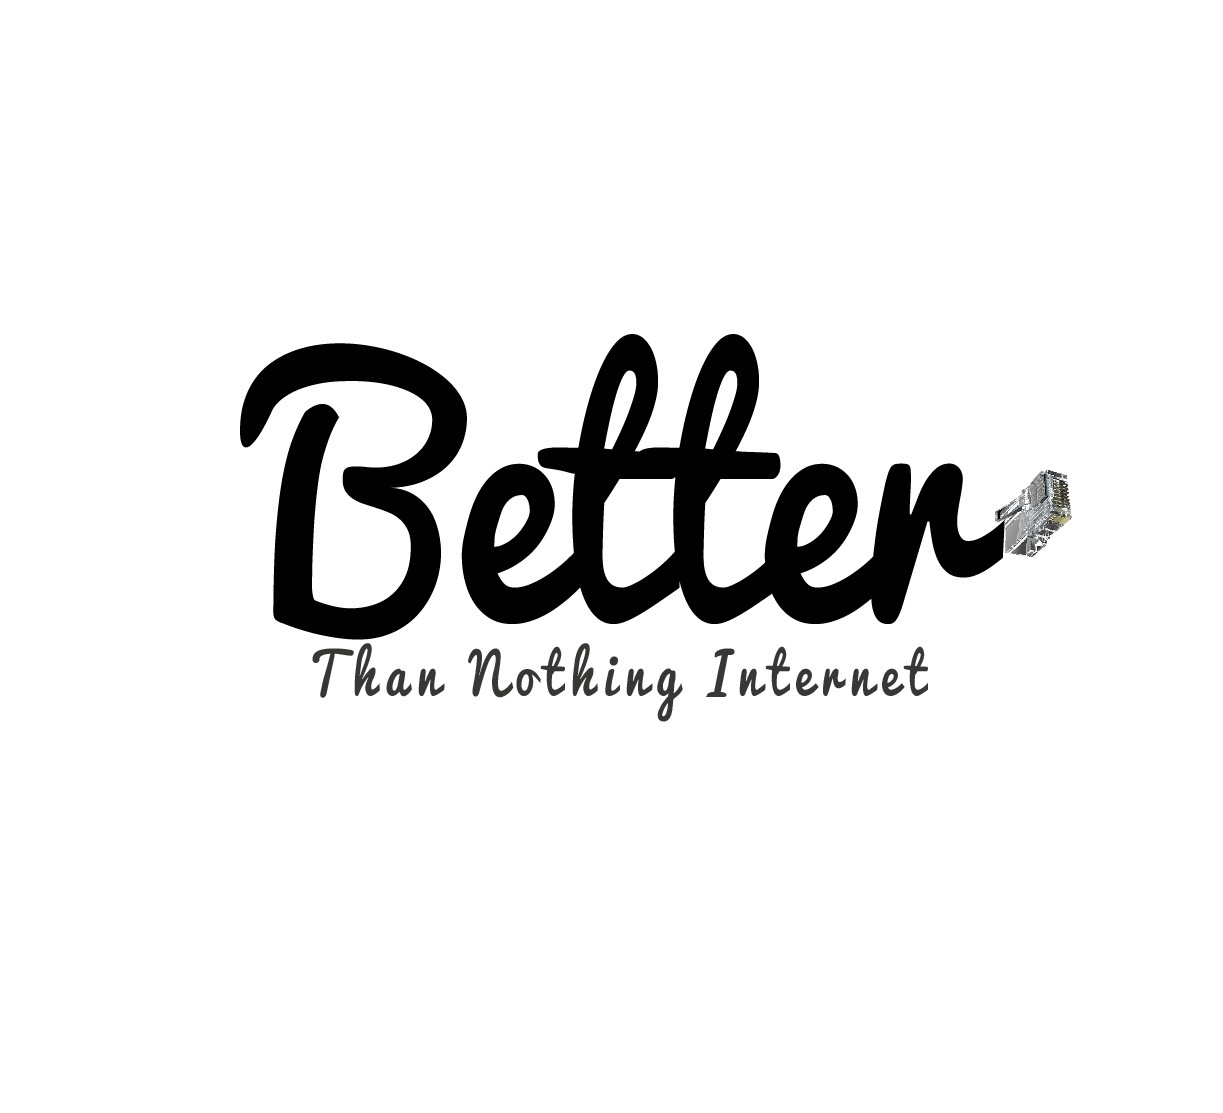 Better Than Nothing Internet